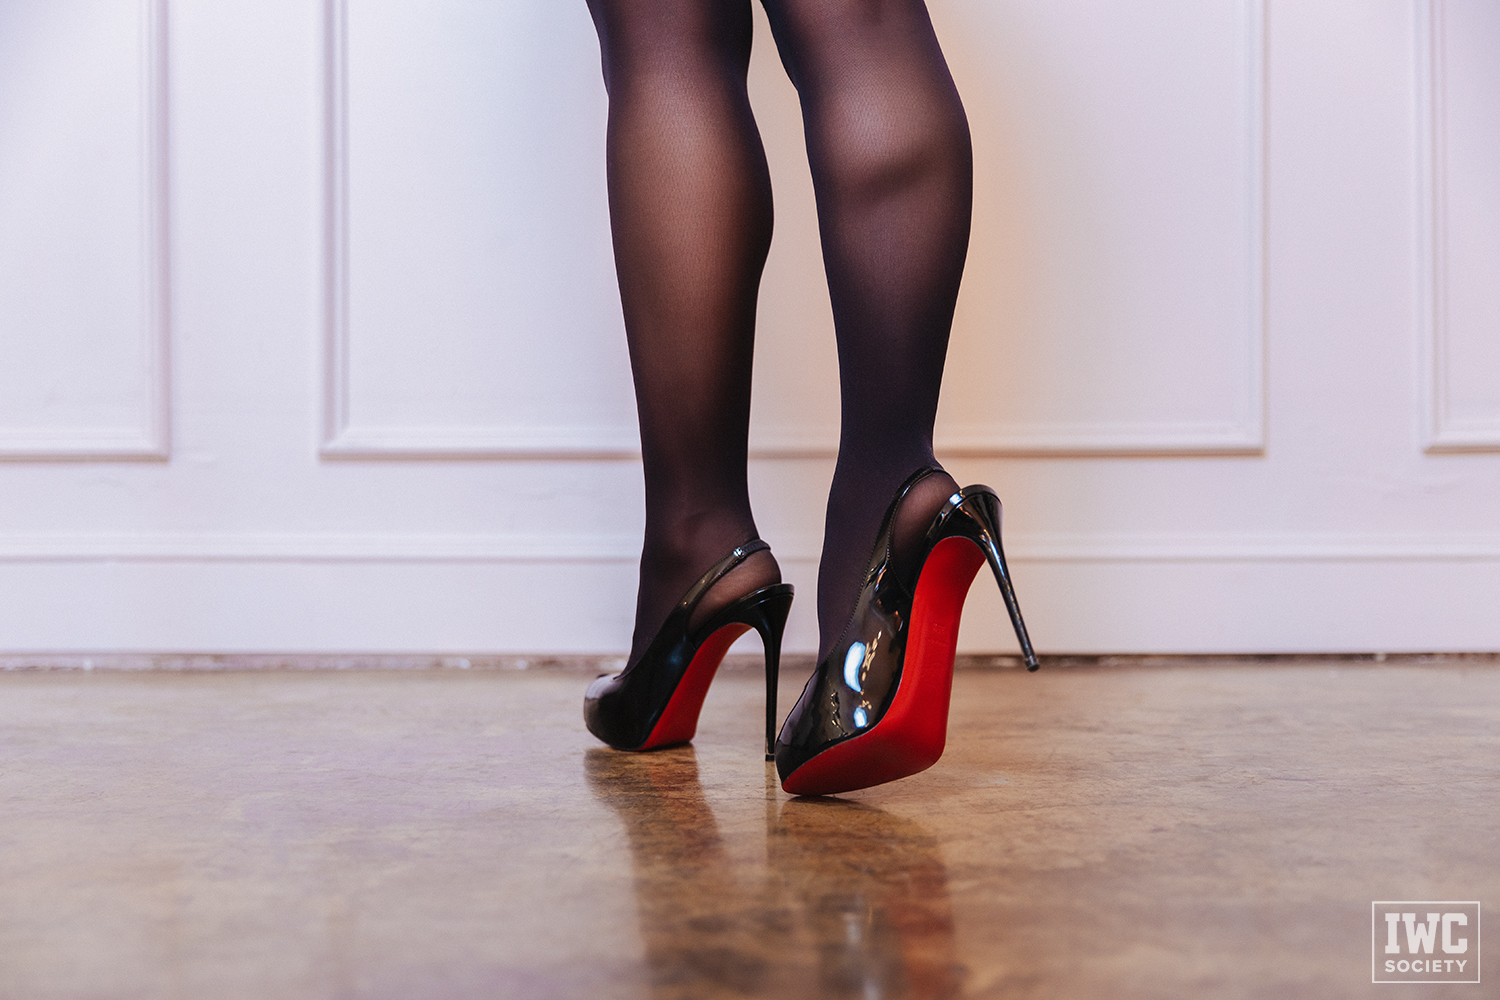 FinDom Princess Violet calves in stockings and close up of feet in high heels with red bottoms